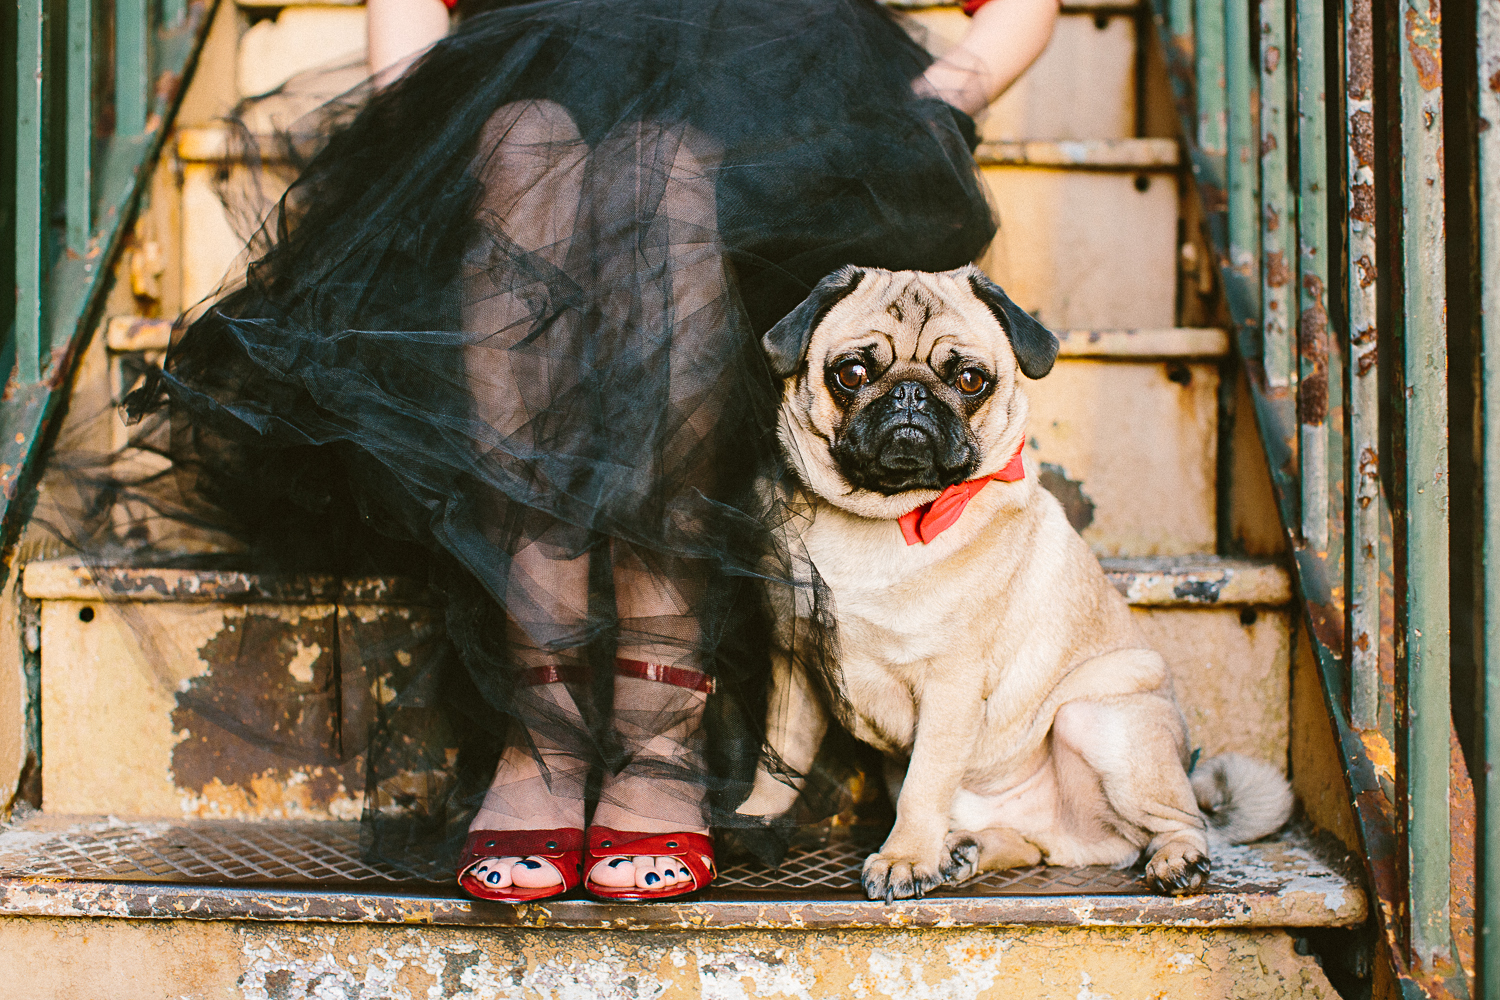 twoguineapigs_pet_photography_oh_jaffa_pug_wearing_bow_tie_collars_red_design_cocktail_weddings